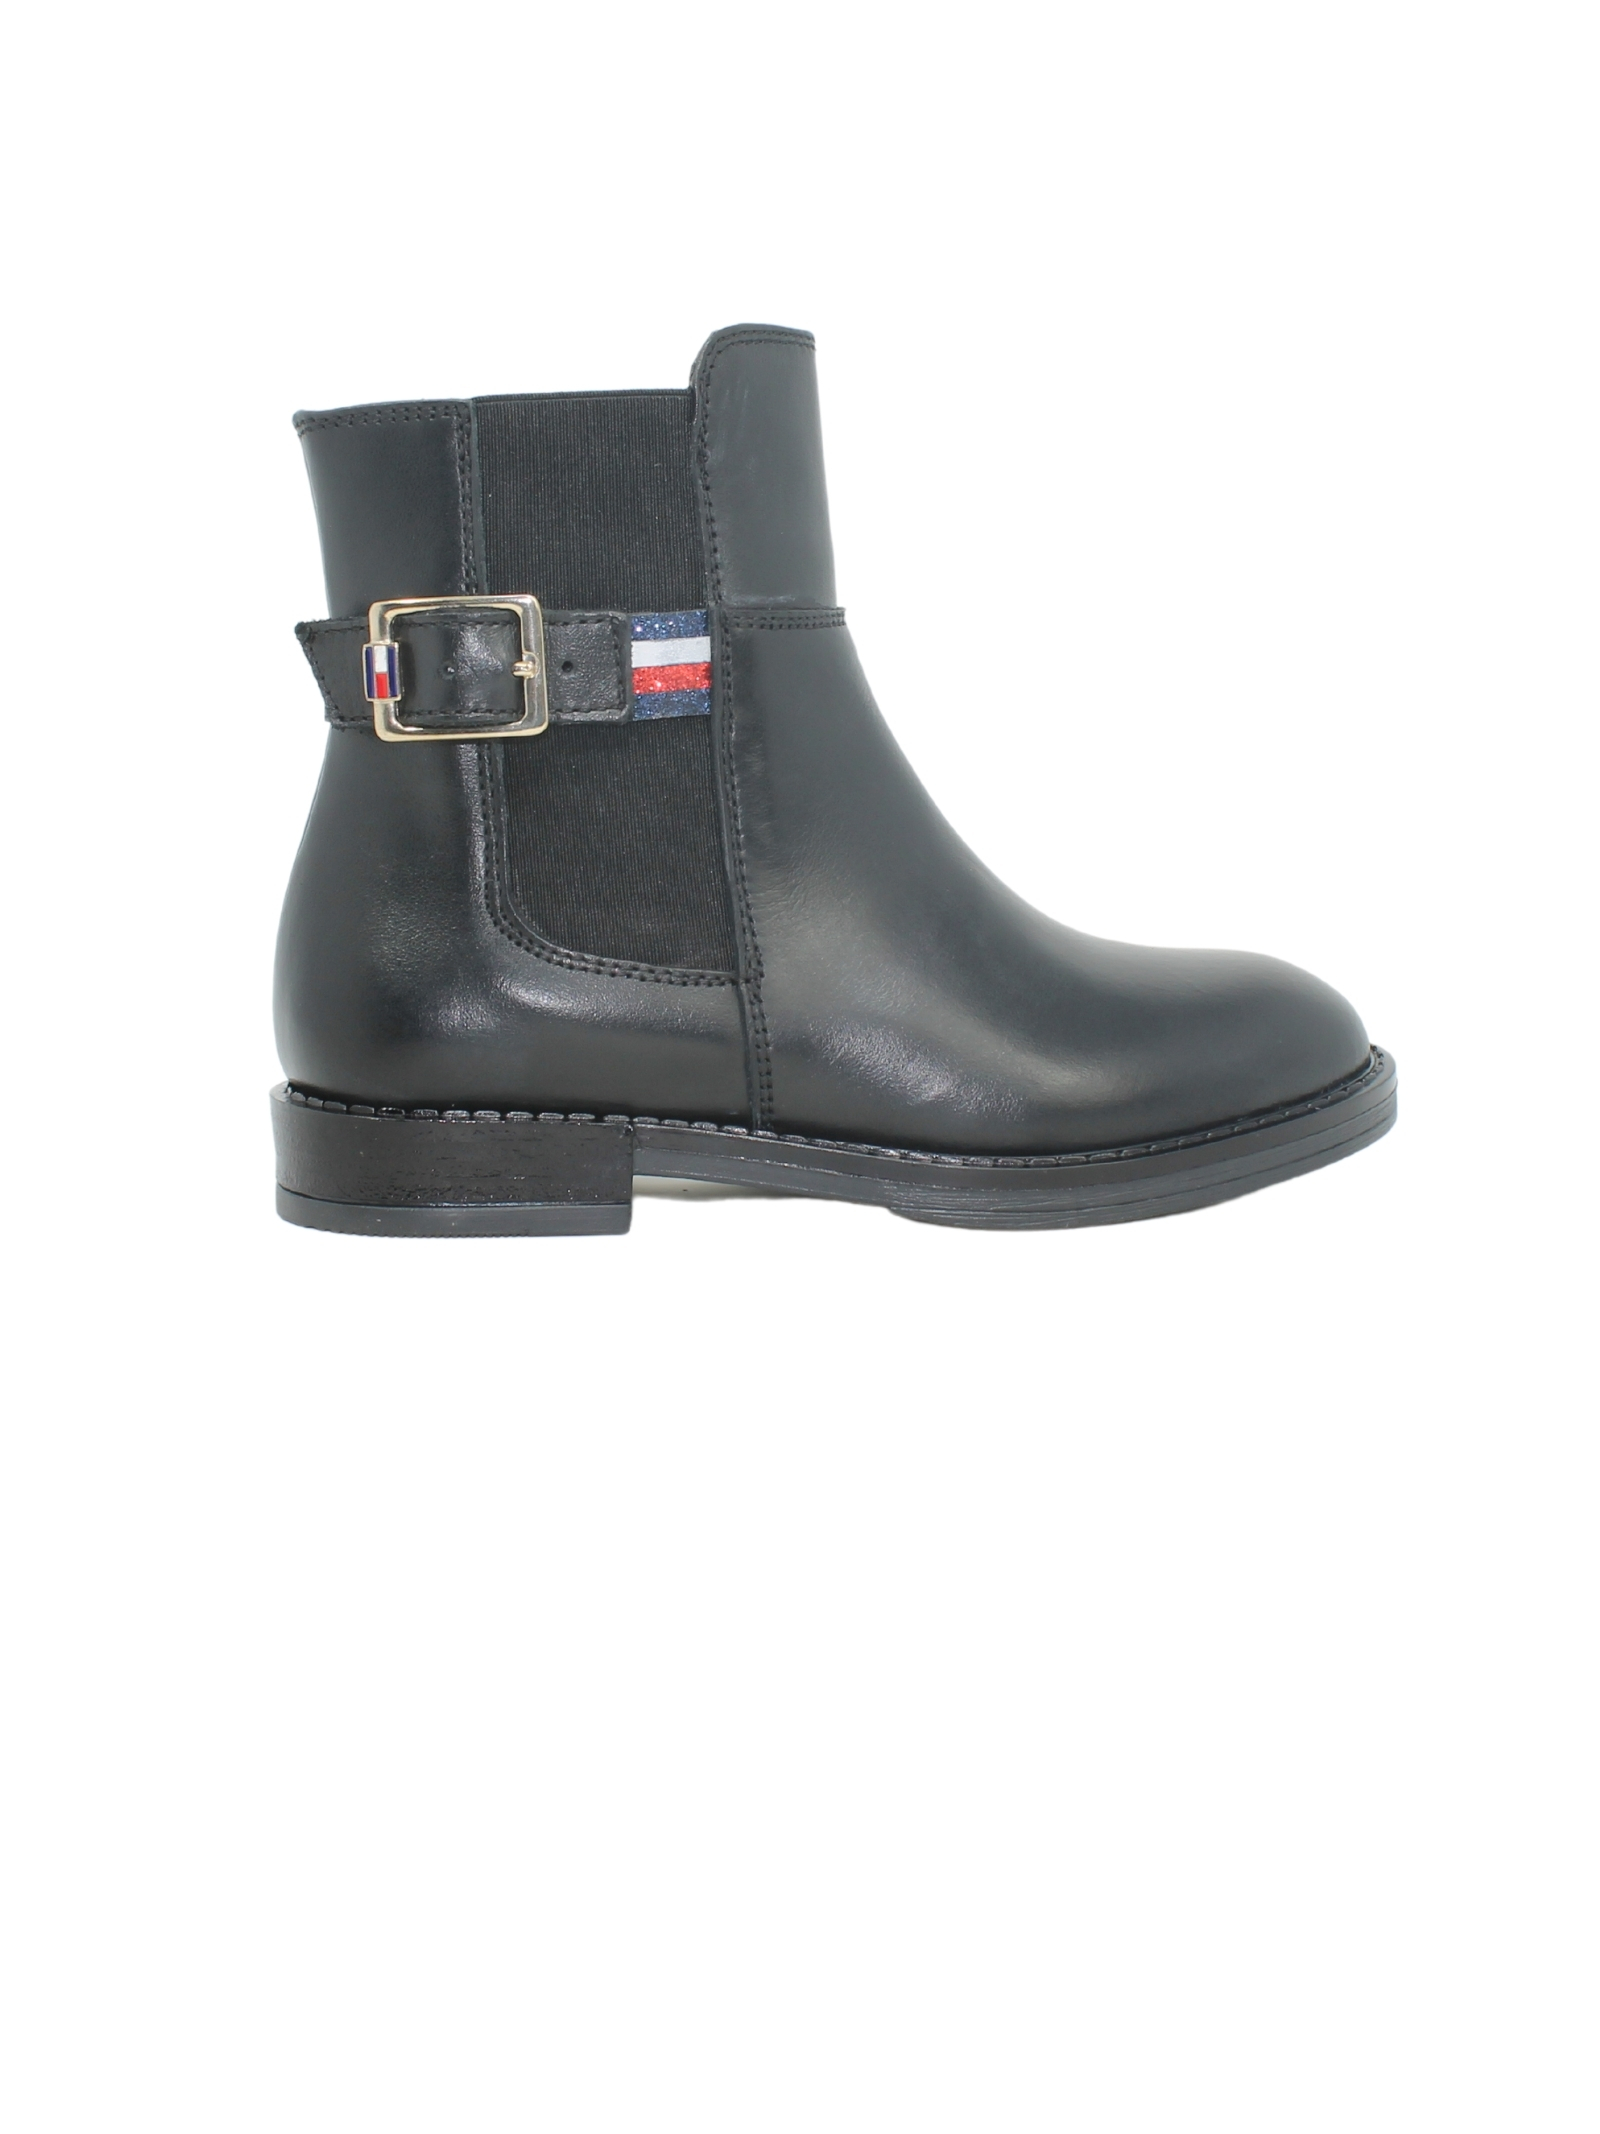 Flat Boots with Glitter for Girls TOMMY HILFIGER KIDS |  | T4A6320230283999NERO